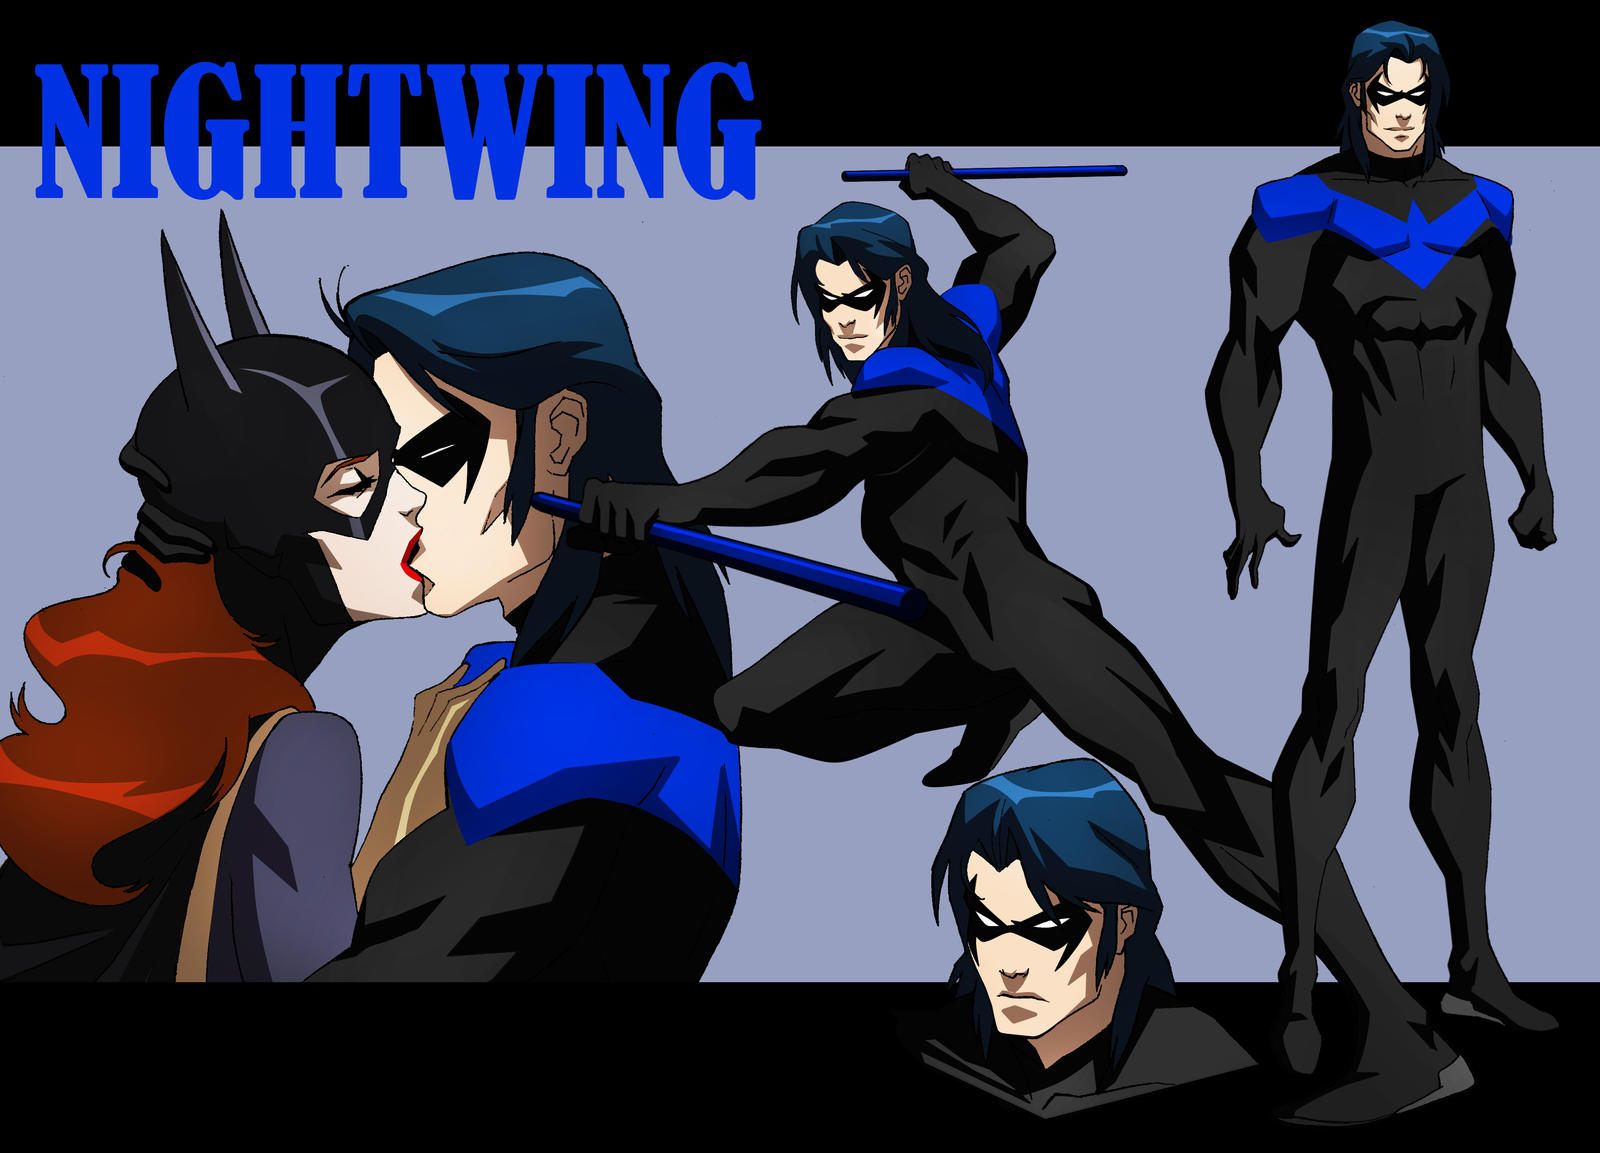 Nightwing (DC Animated Film Universe) | Heroes Wiki ...